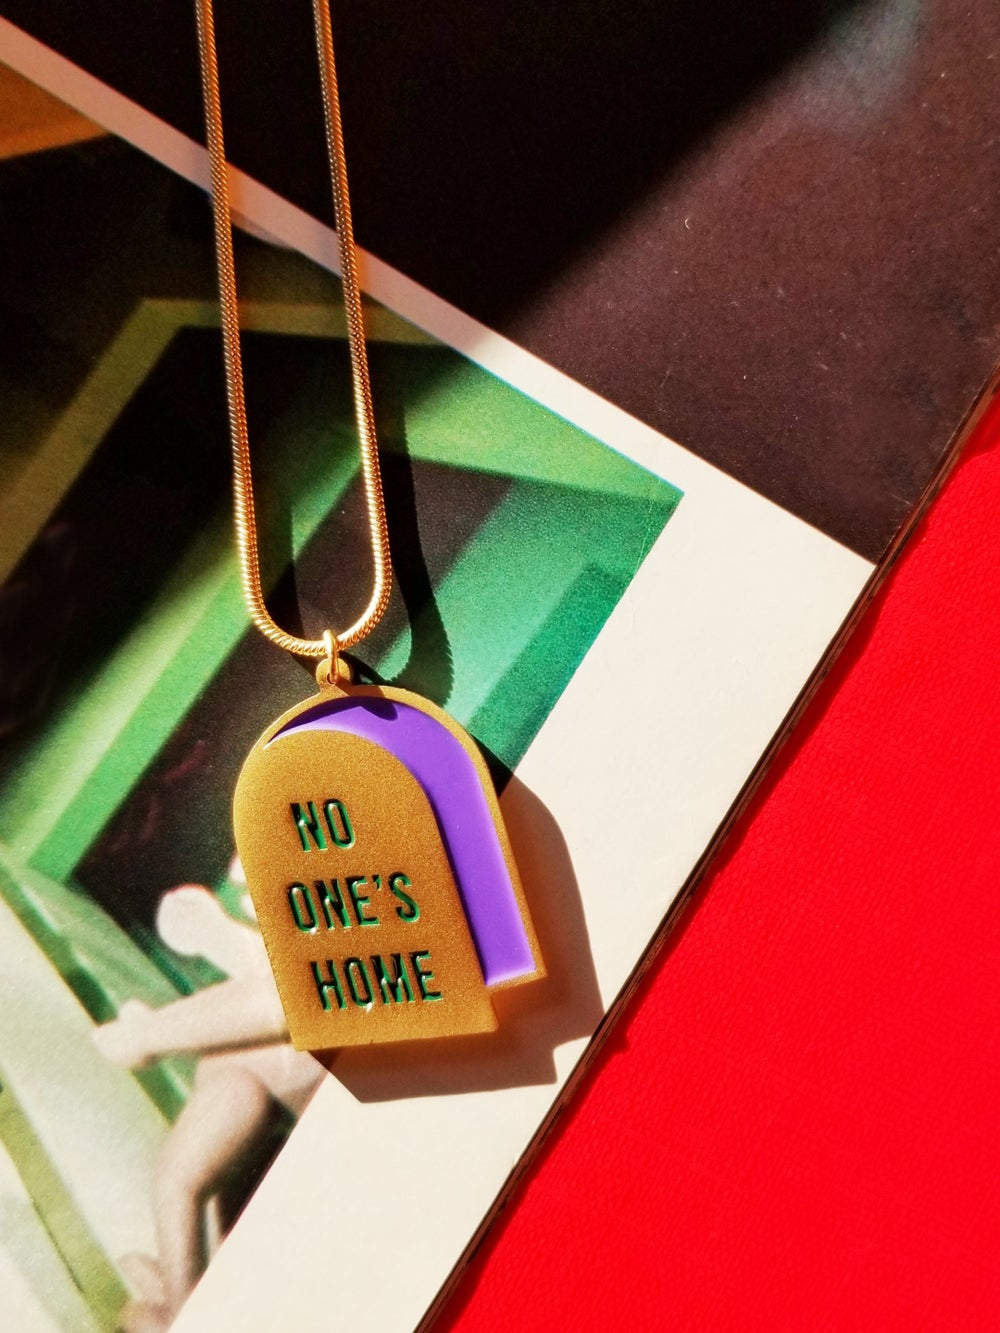 I'm not here / No one's home - reversible necklace